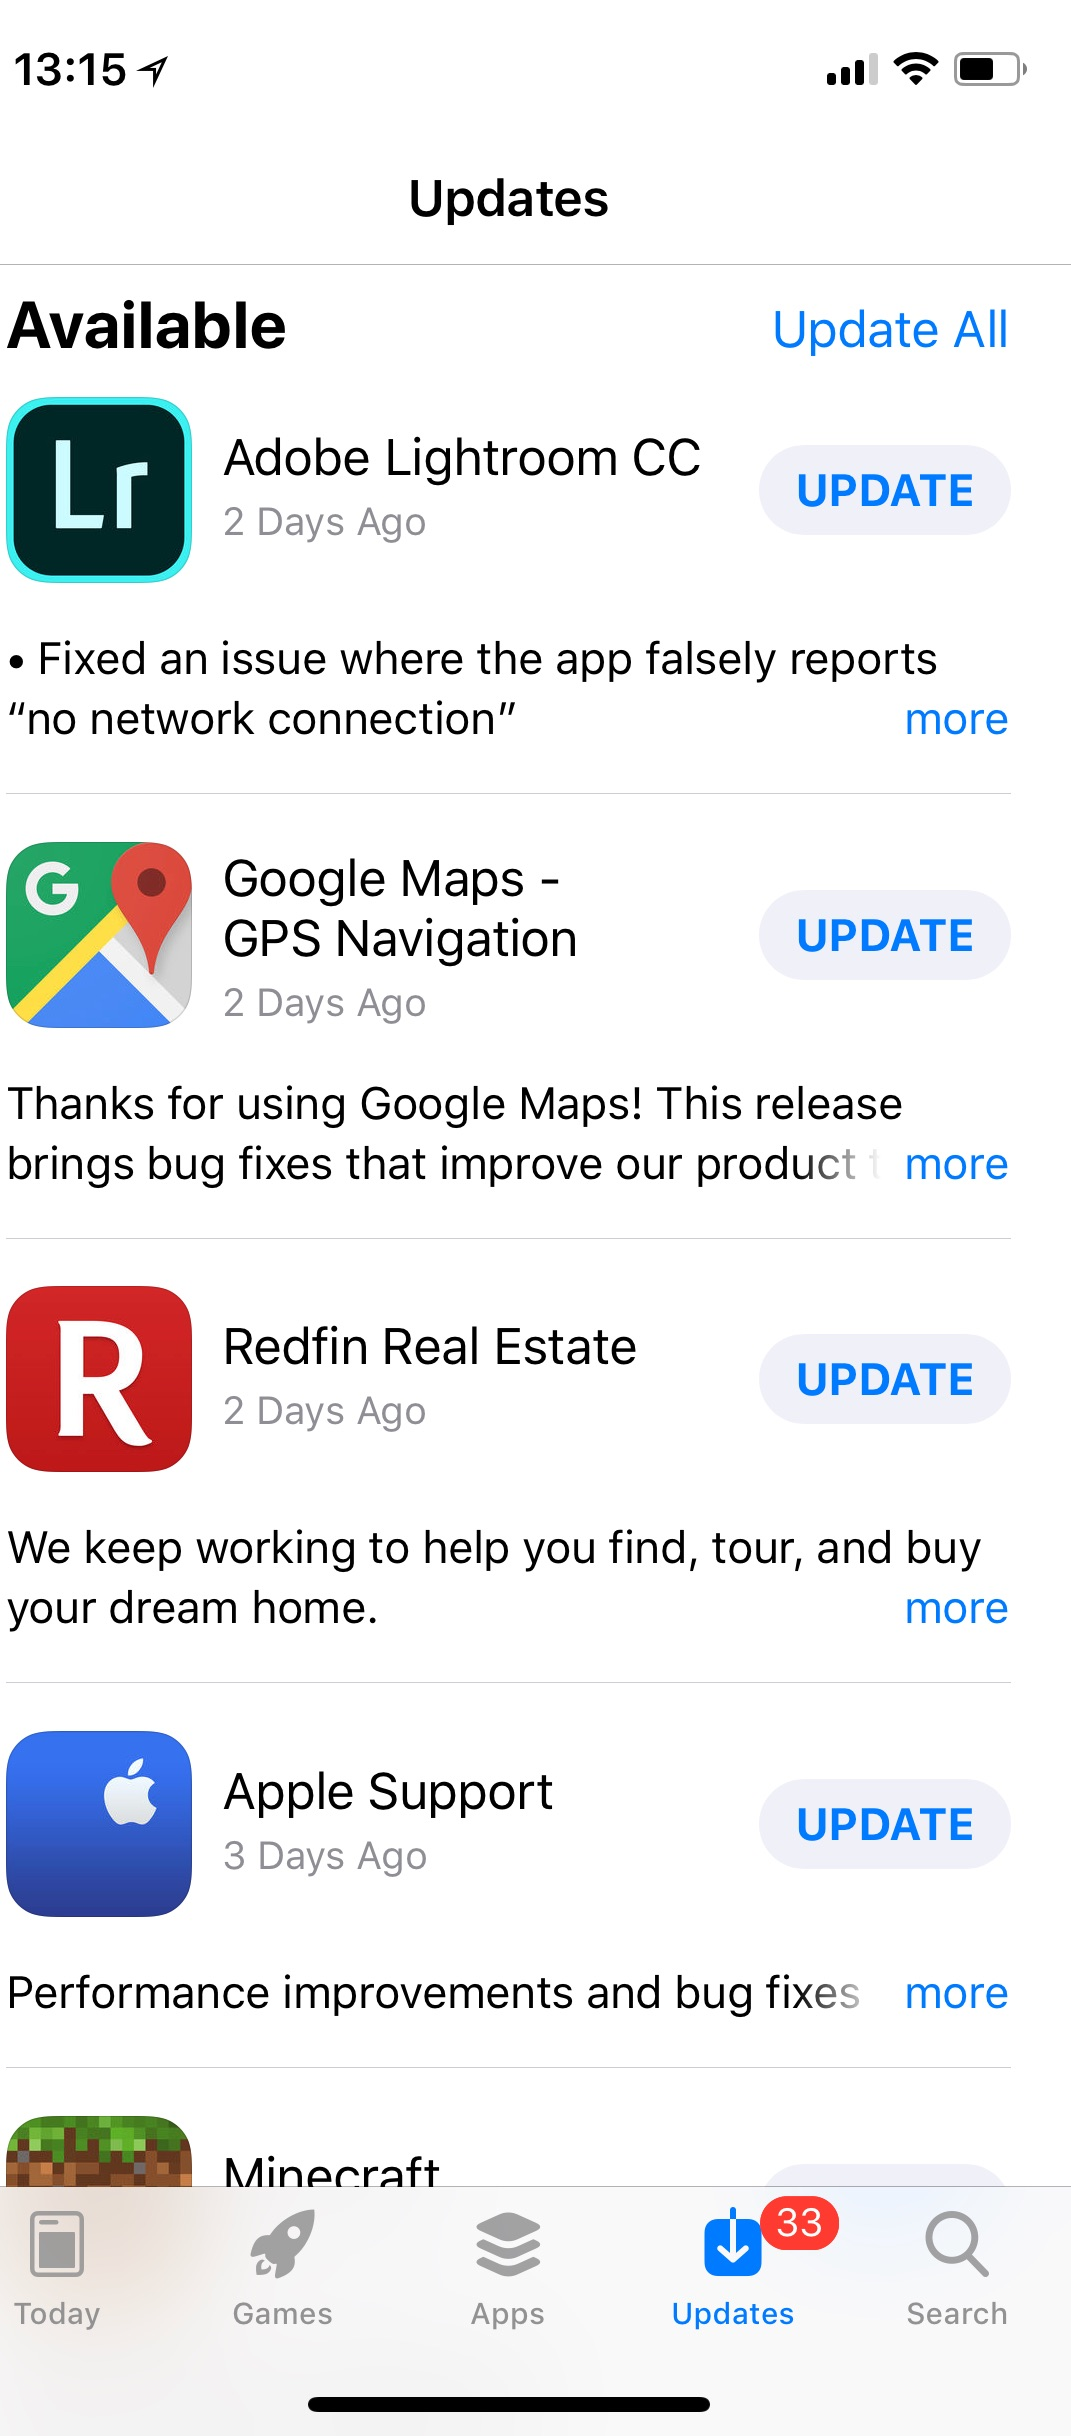 Google Maps Not Working? Fix - macReports on